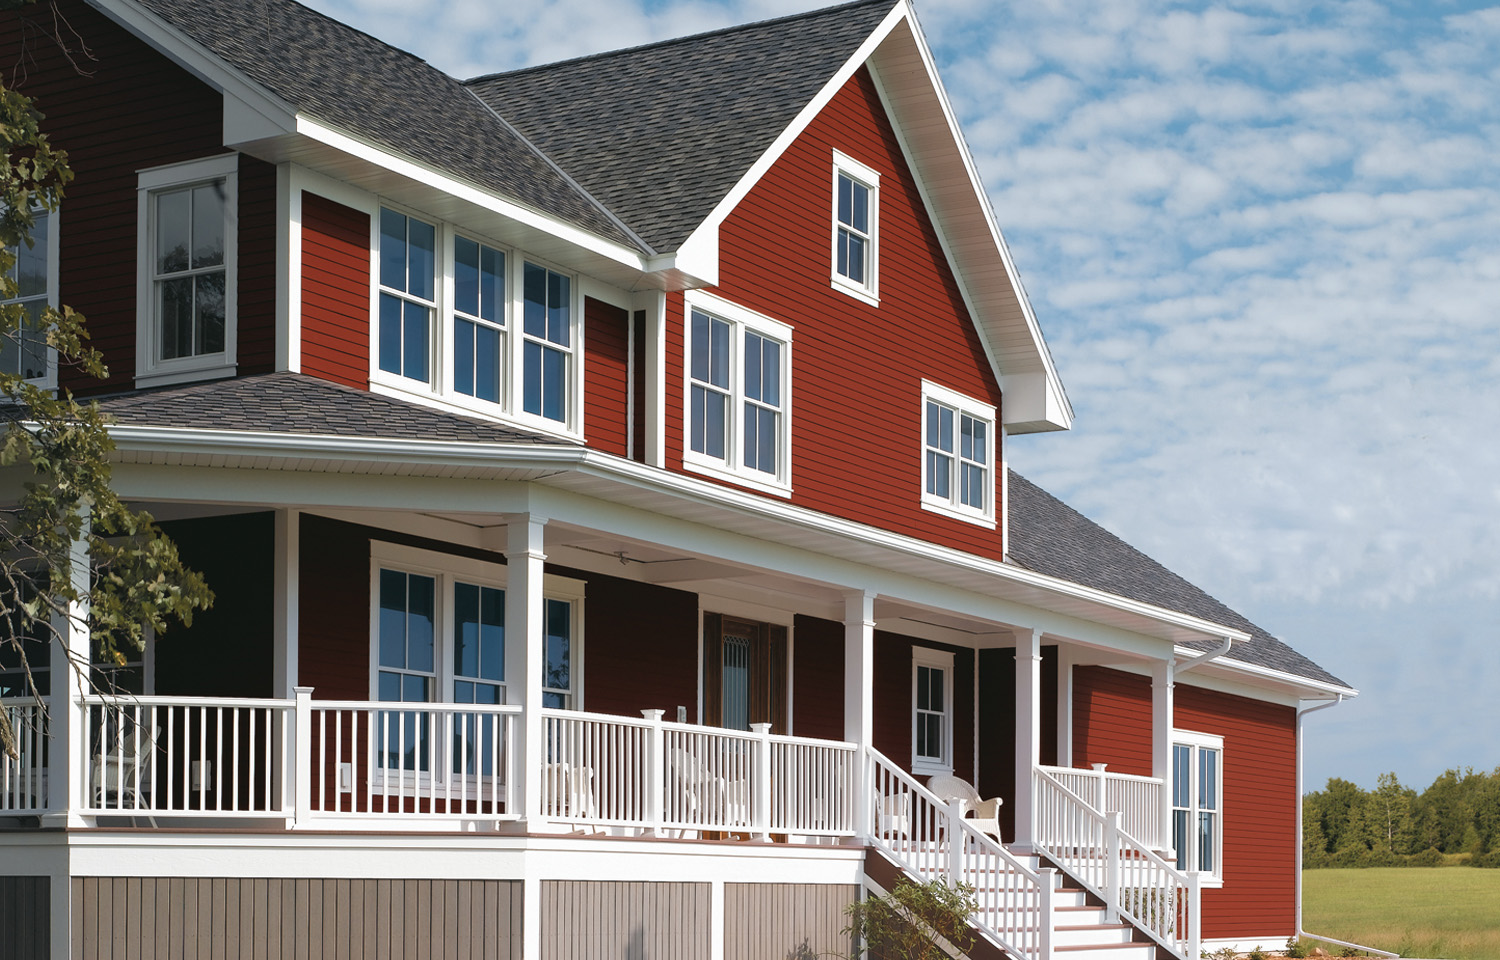 House siding colors 28 of the most popular options for Siding color